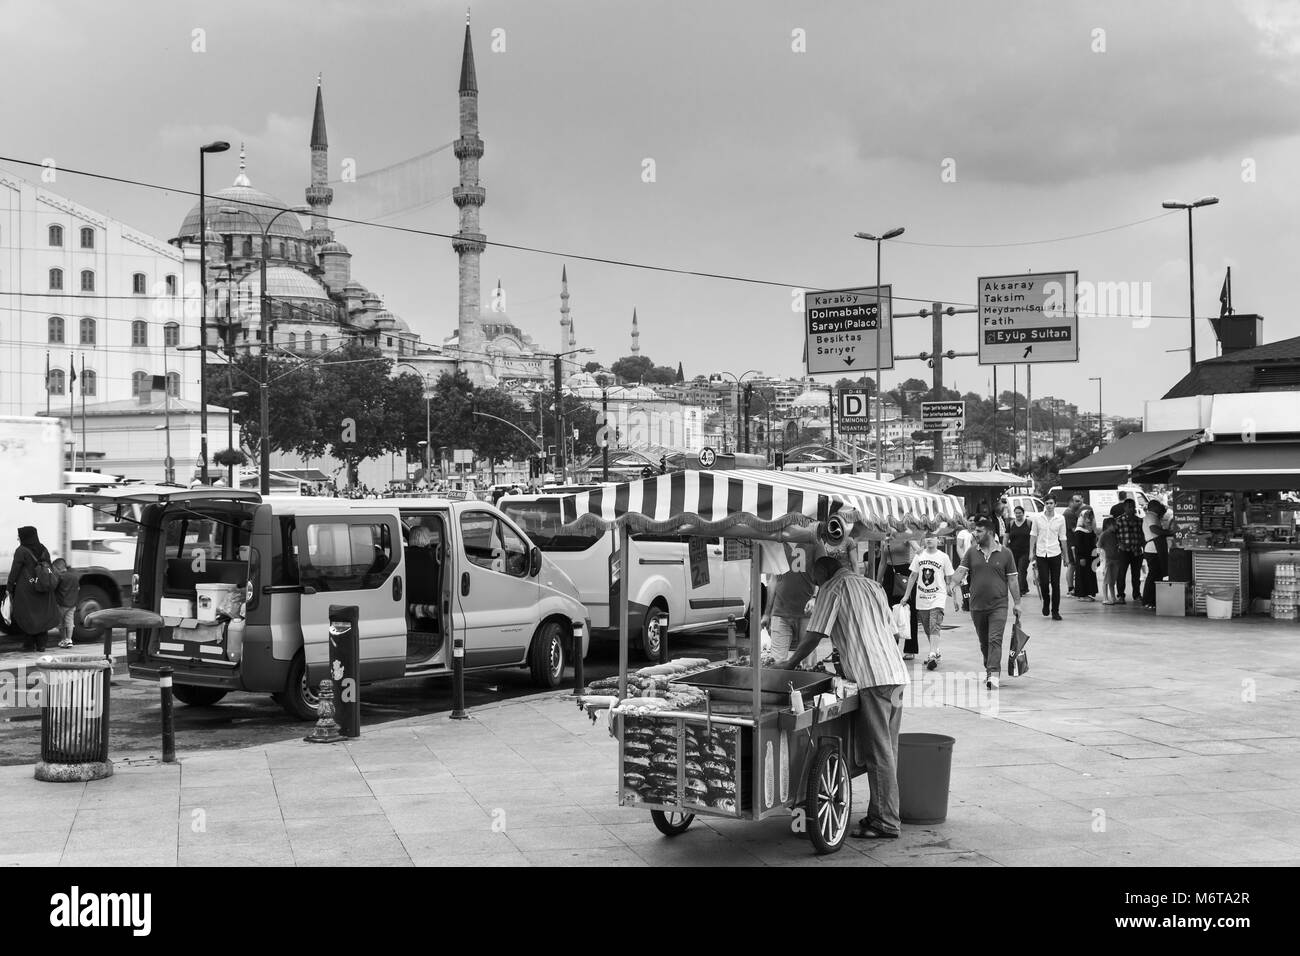 Istanbul, Turkey - June 28, 2016: Urban street food, cart with roasted chestnuts and corn in Istanbul city, ordinary - Stock Image